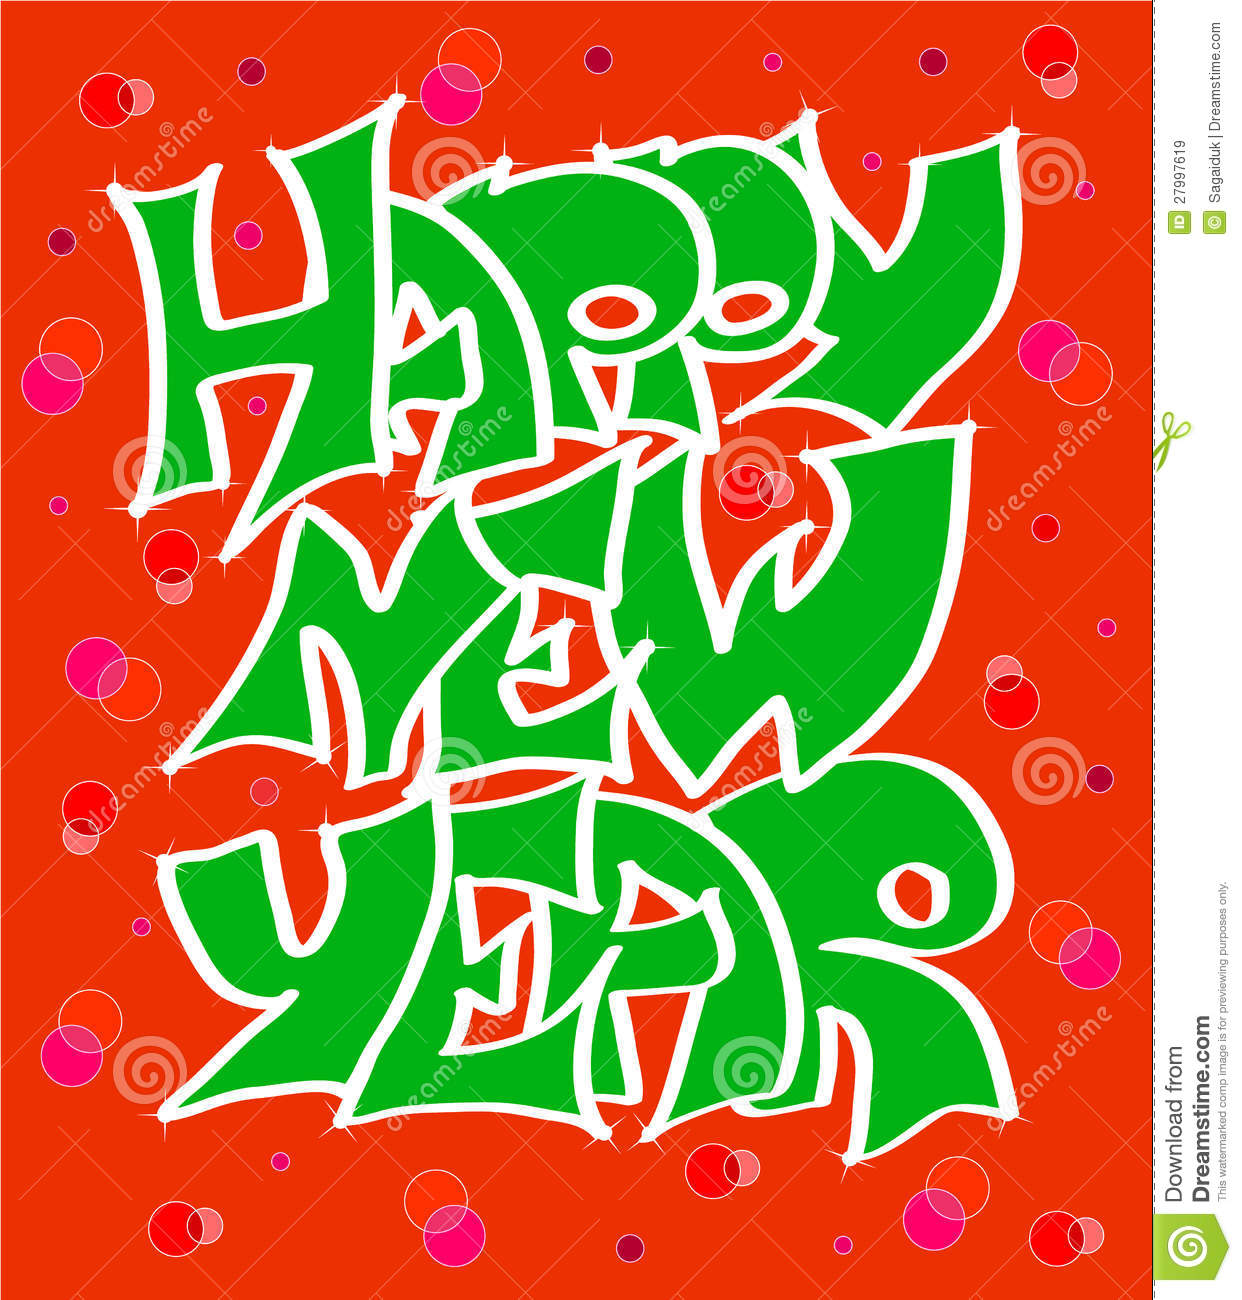 Happy New Years Graffiti Royalty Free Stock Images